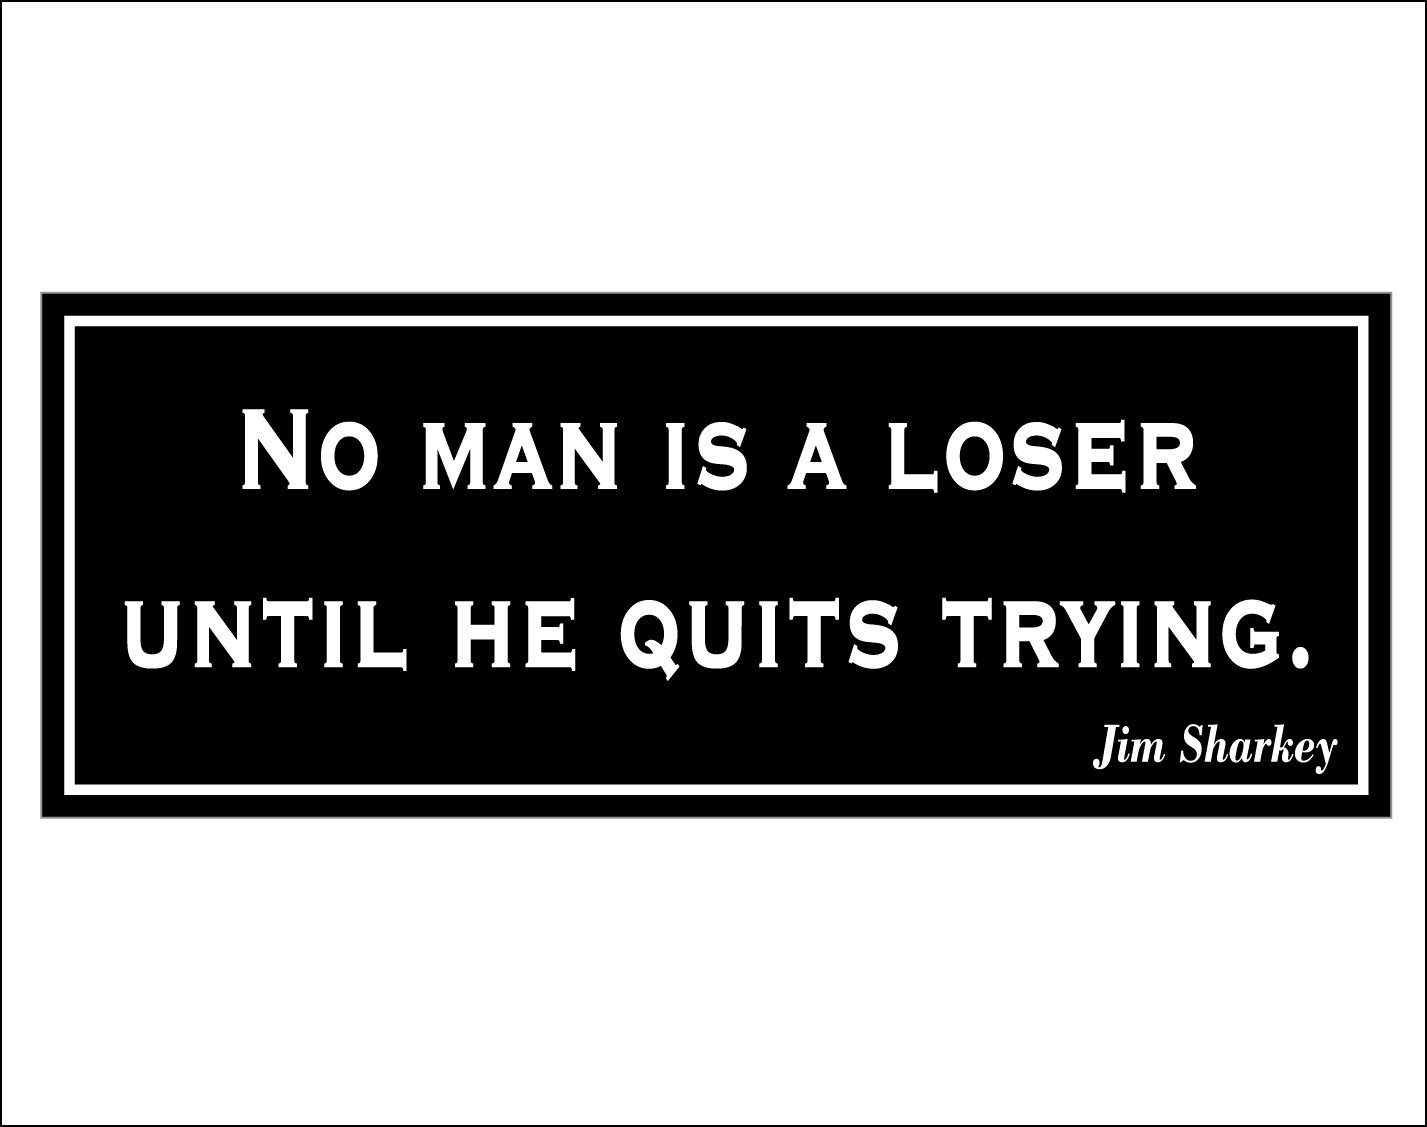 No man is a loser until he quits trying. - bumper sticker